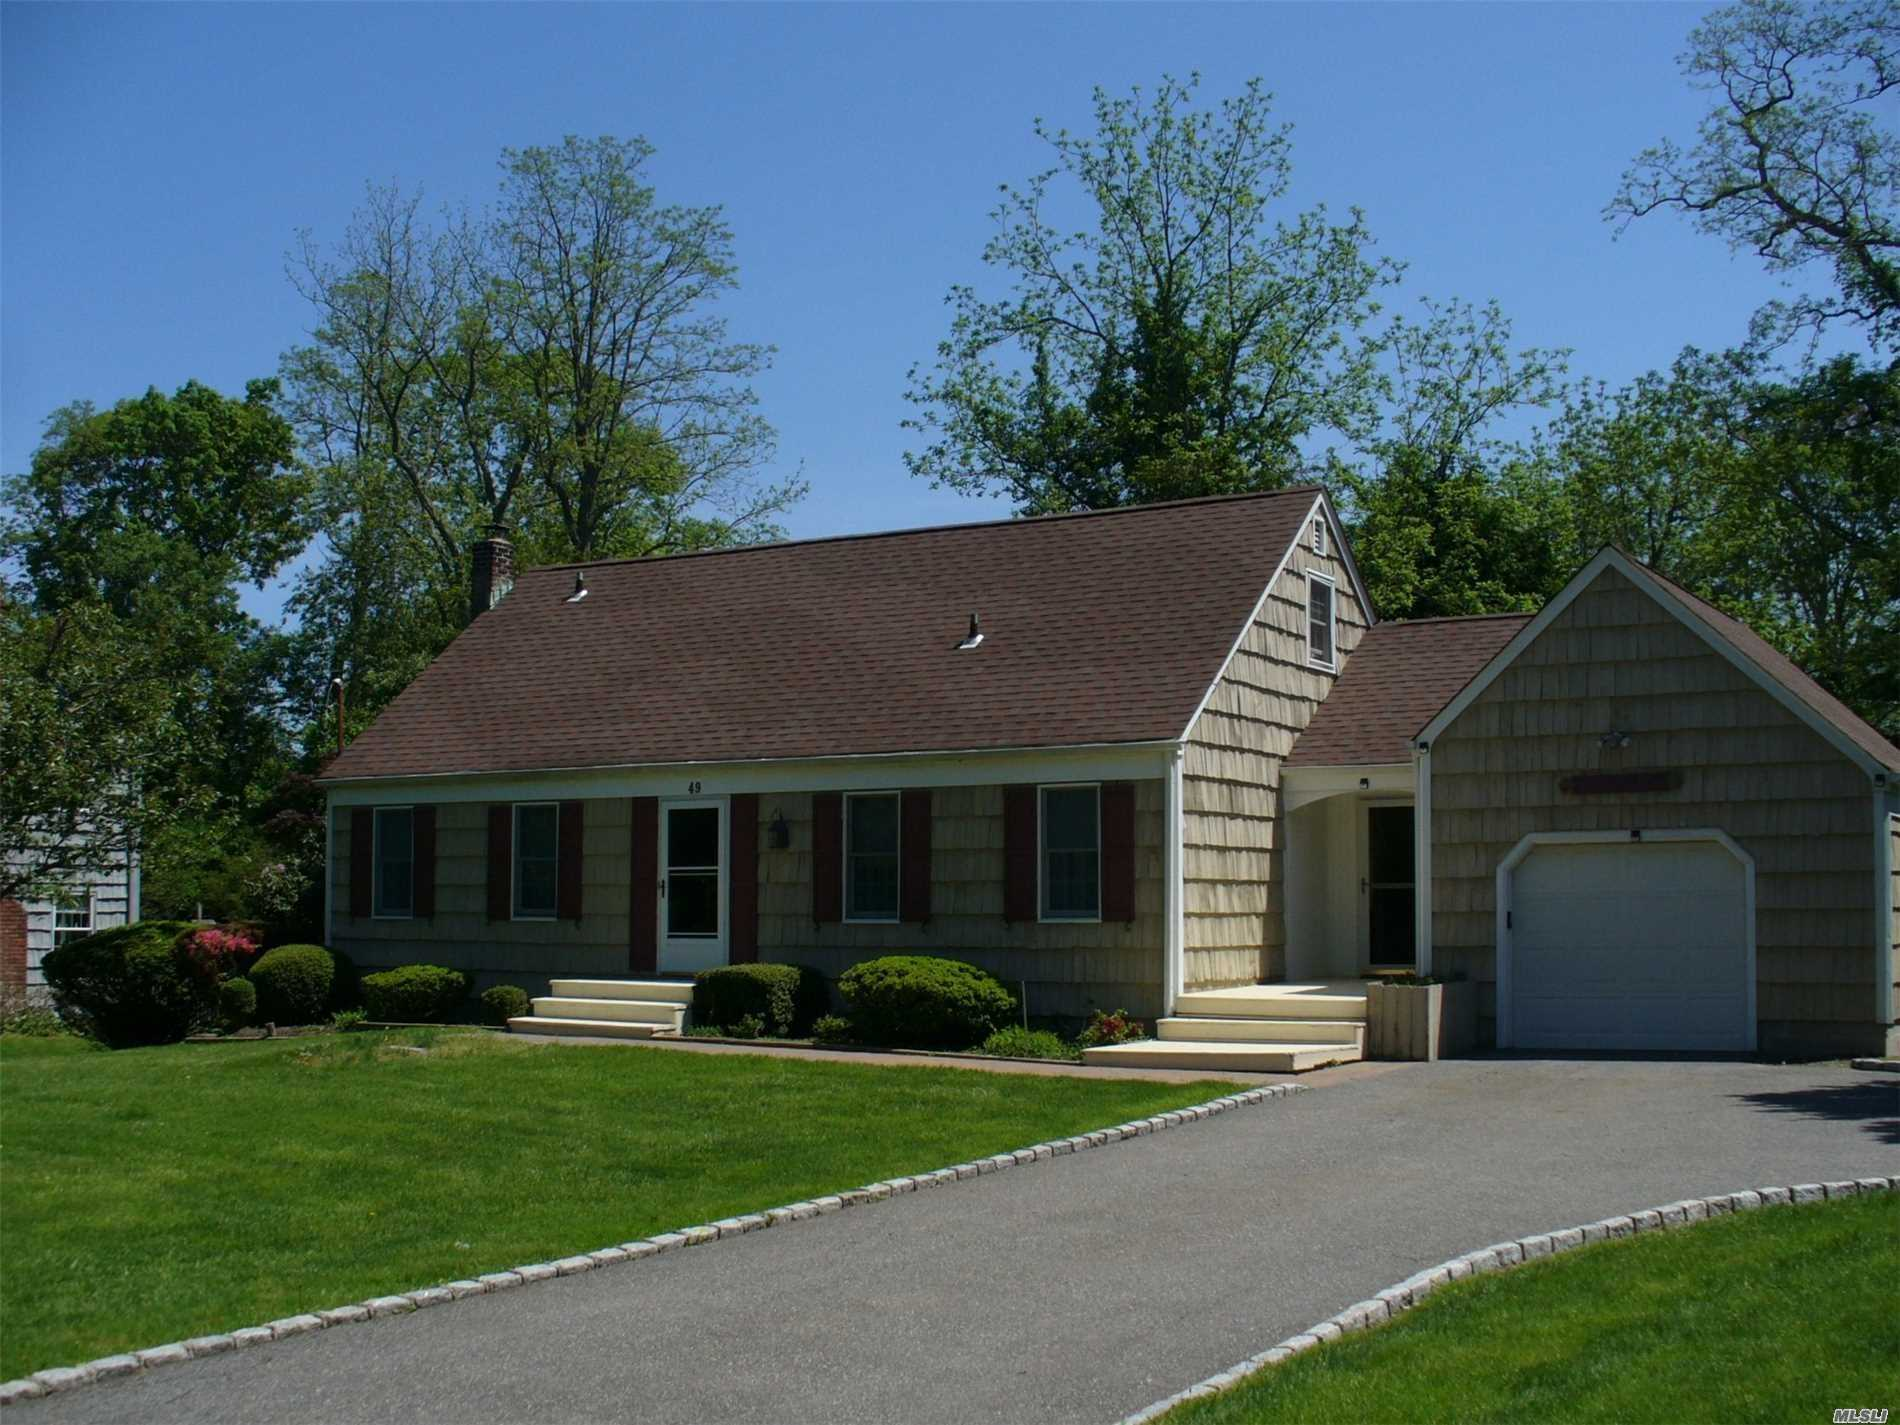 Traditional Expanded Cape On Shy 1/2 Acre Short Walk To Community Beach - Annual Dues $50. Master Suite, 3 Add'l Brs And 1.5 Baths. Foyer, Lr, Fml Dr, Eik. Lrdy Rm. Full Basement, Attached Garage. Large Yard With Spacious Deck With Room For Pool And Children To Play.